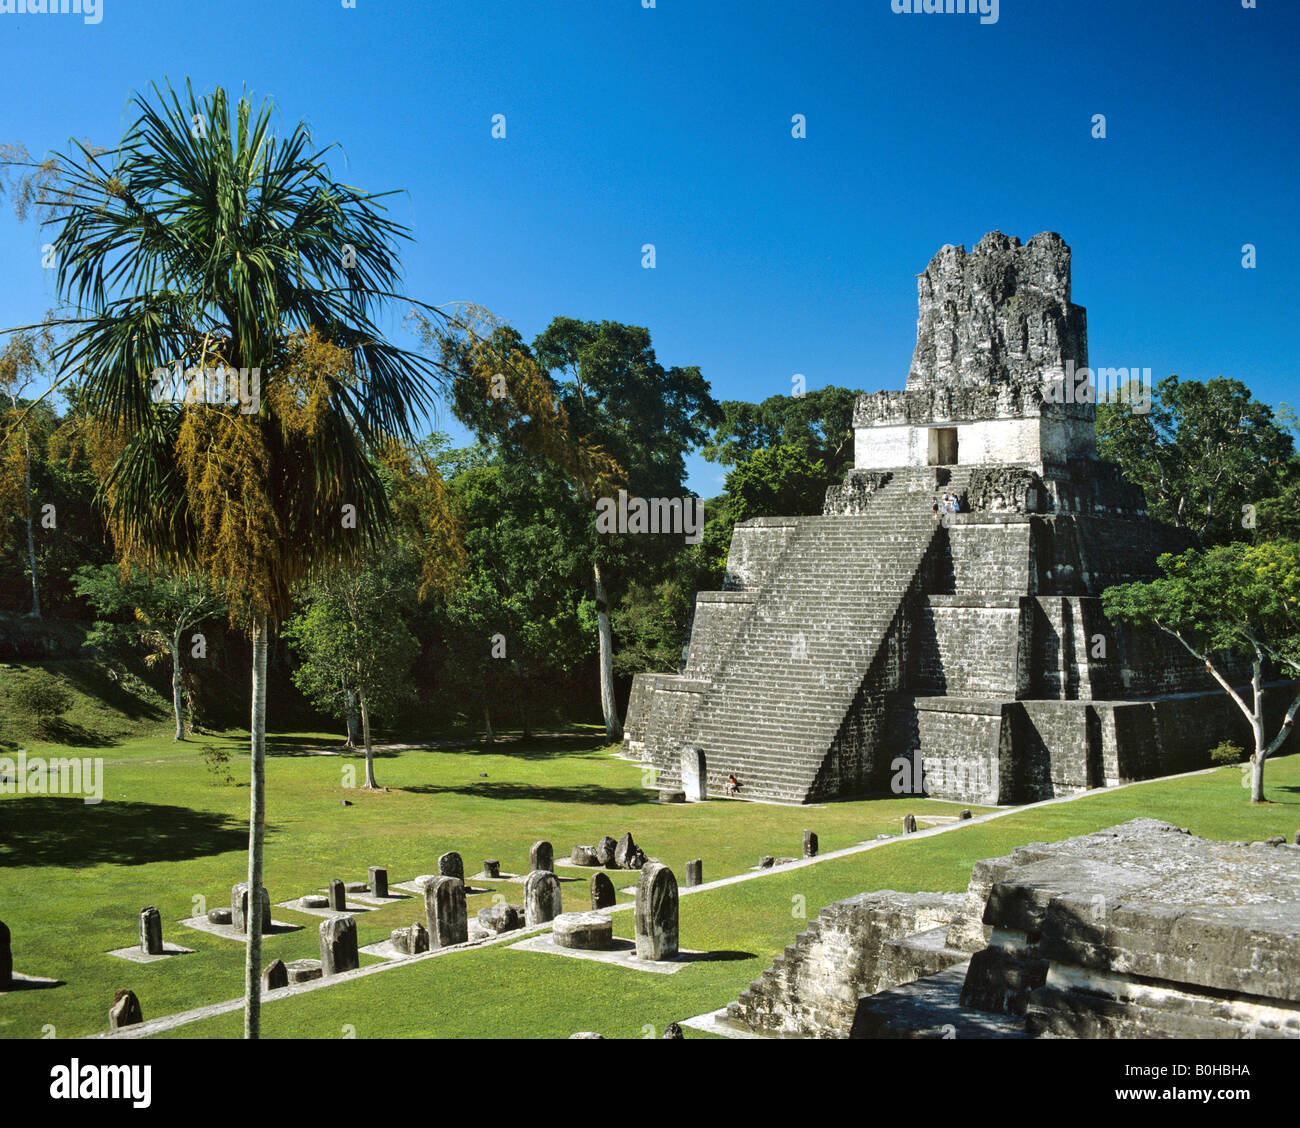 Temple ruins of Tikal, Maya pyramid, Guatemala, Central America - Stock Image